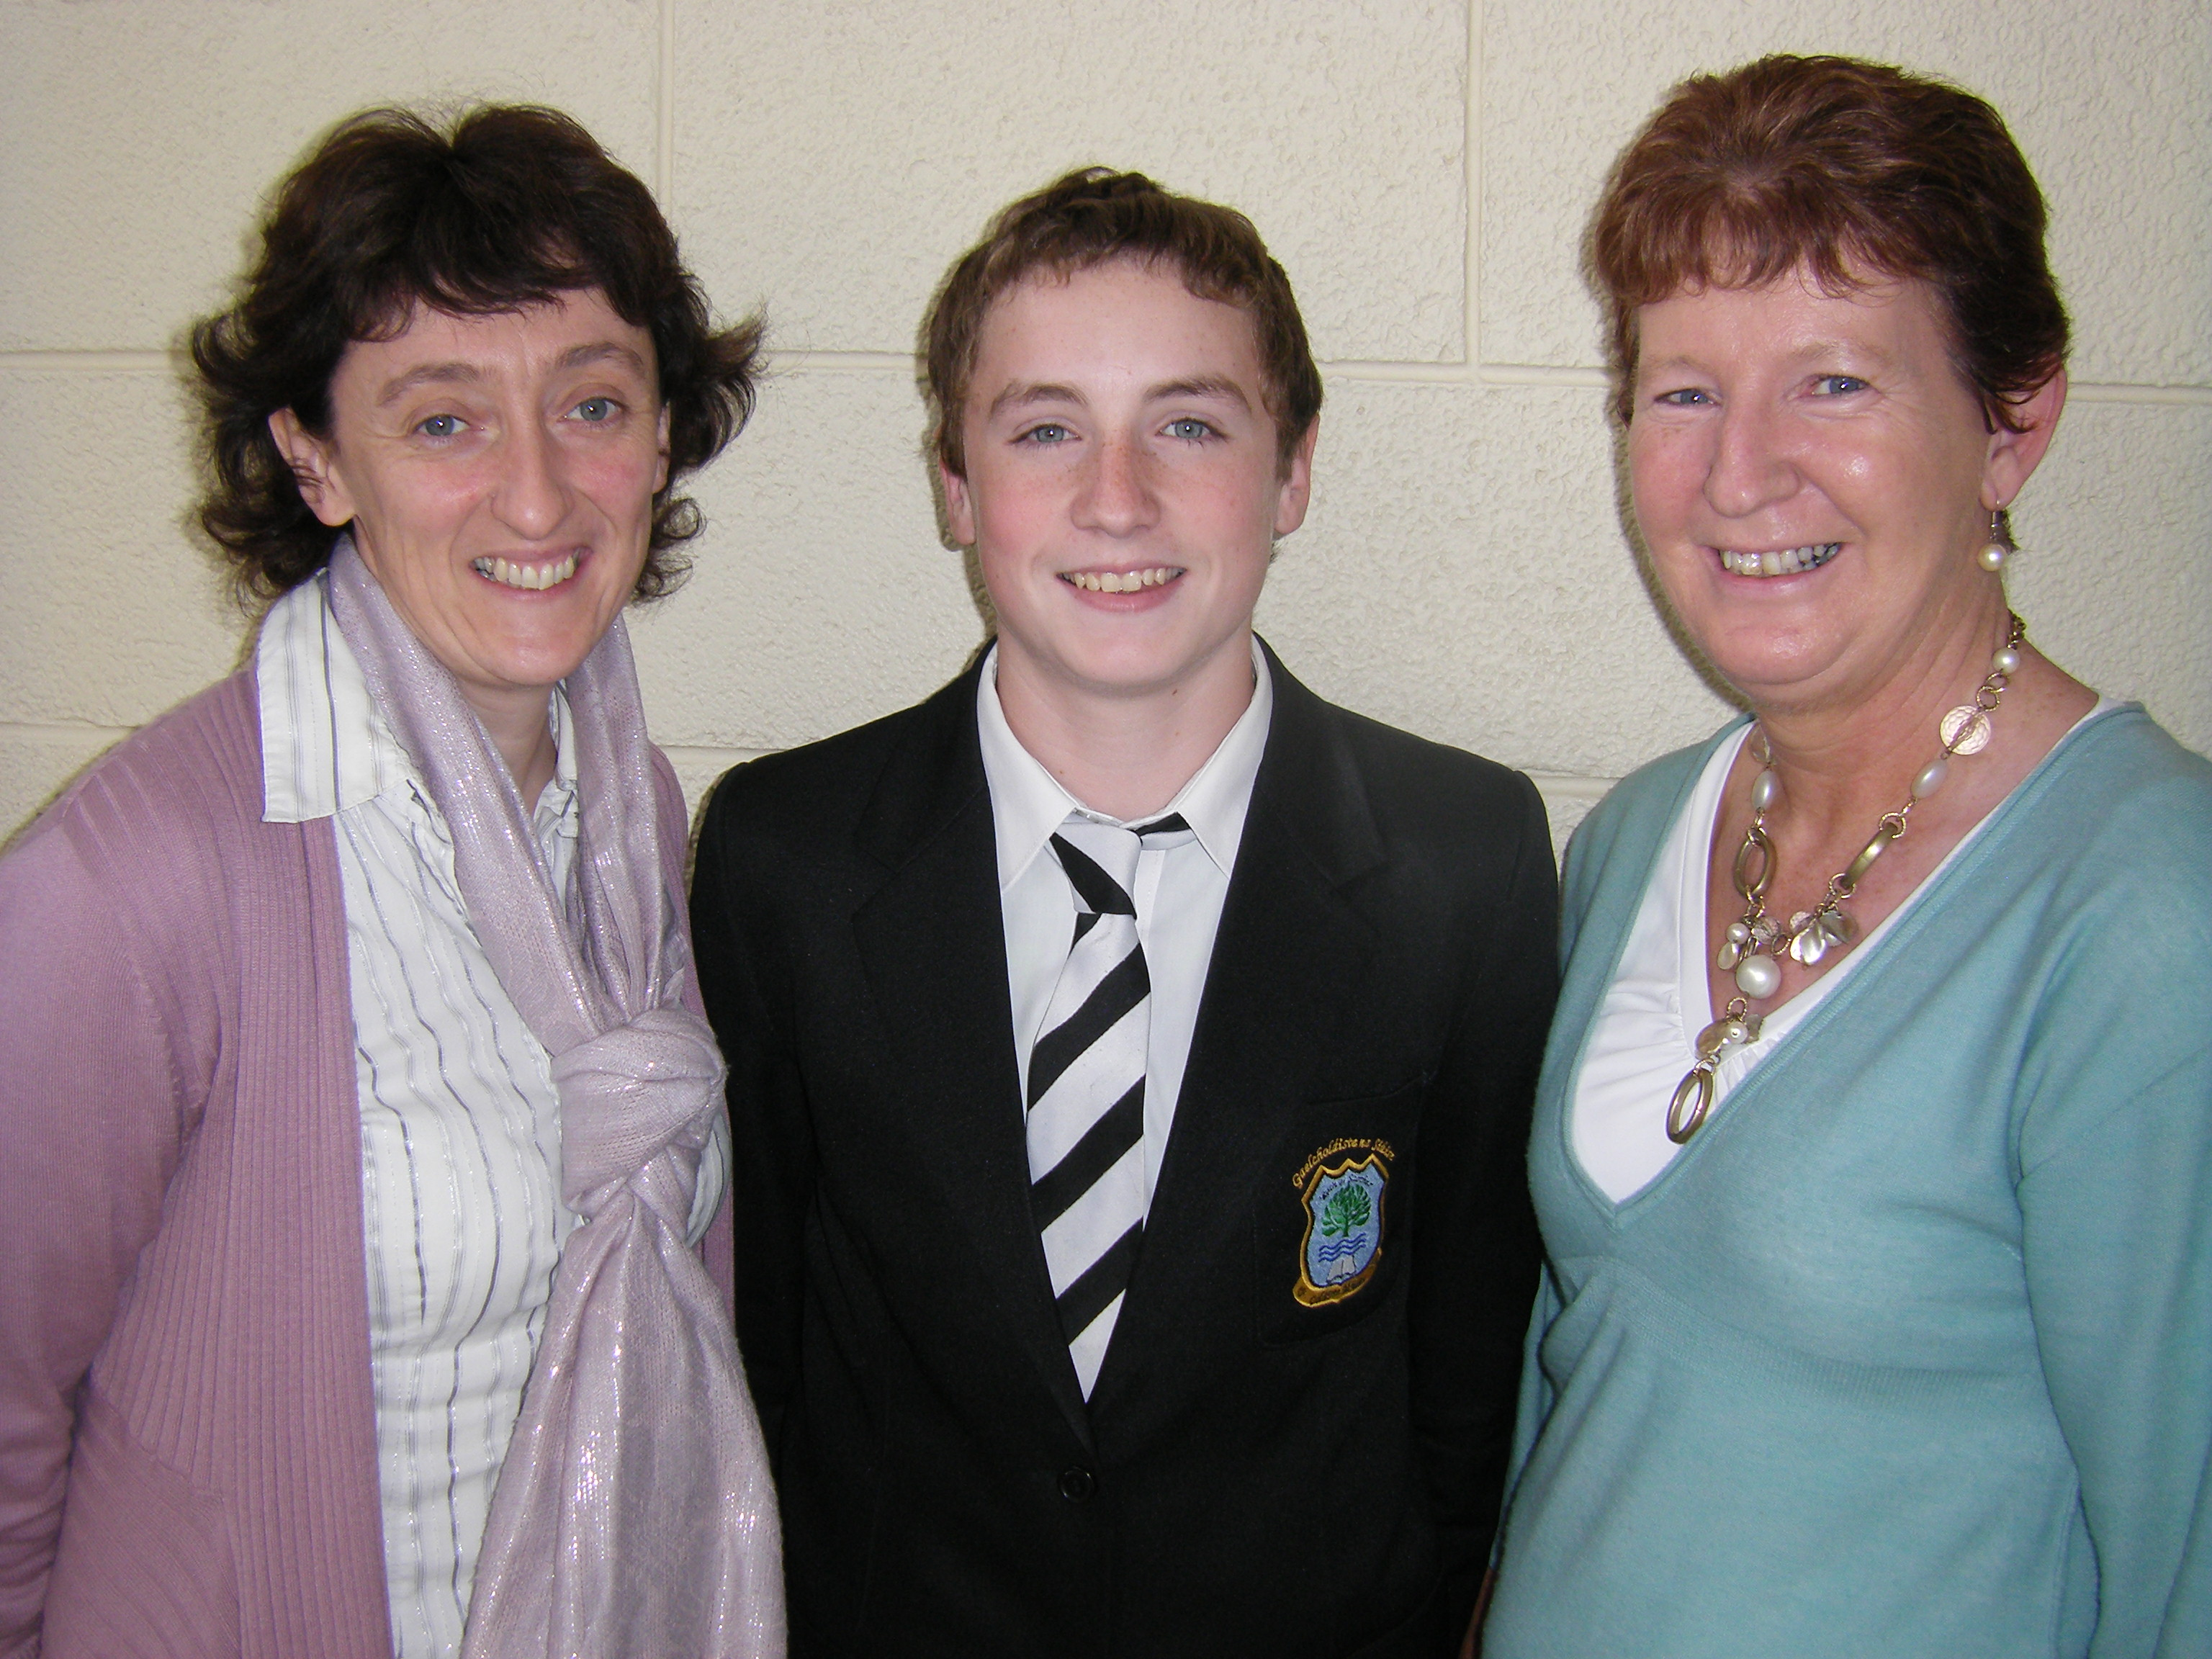 dnal o maolcatha coliste mhuire co ed science  maths olympiad winner miss conroyscience teacher  miss cahill maths teacher